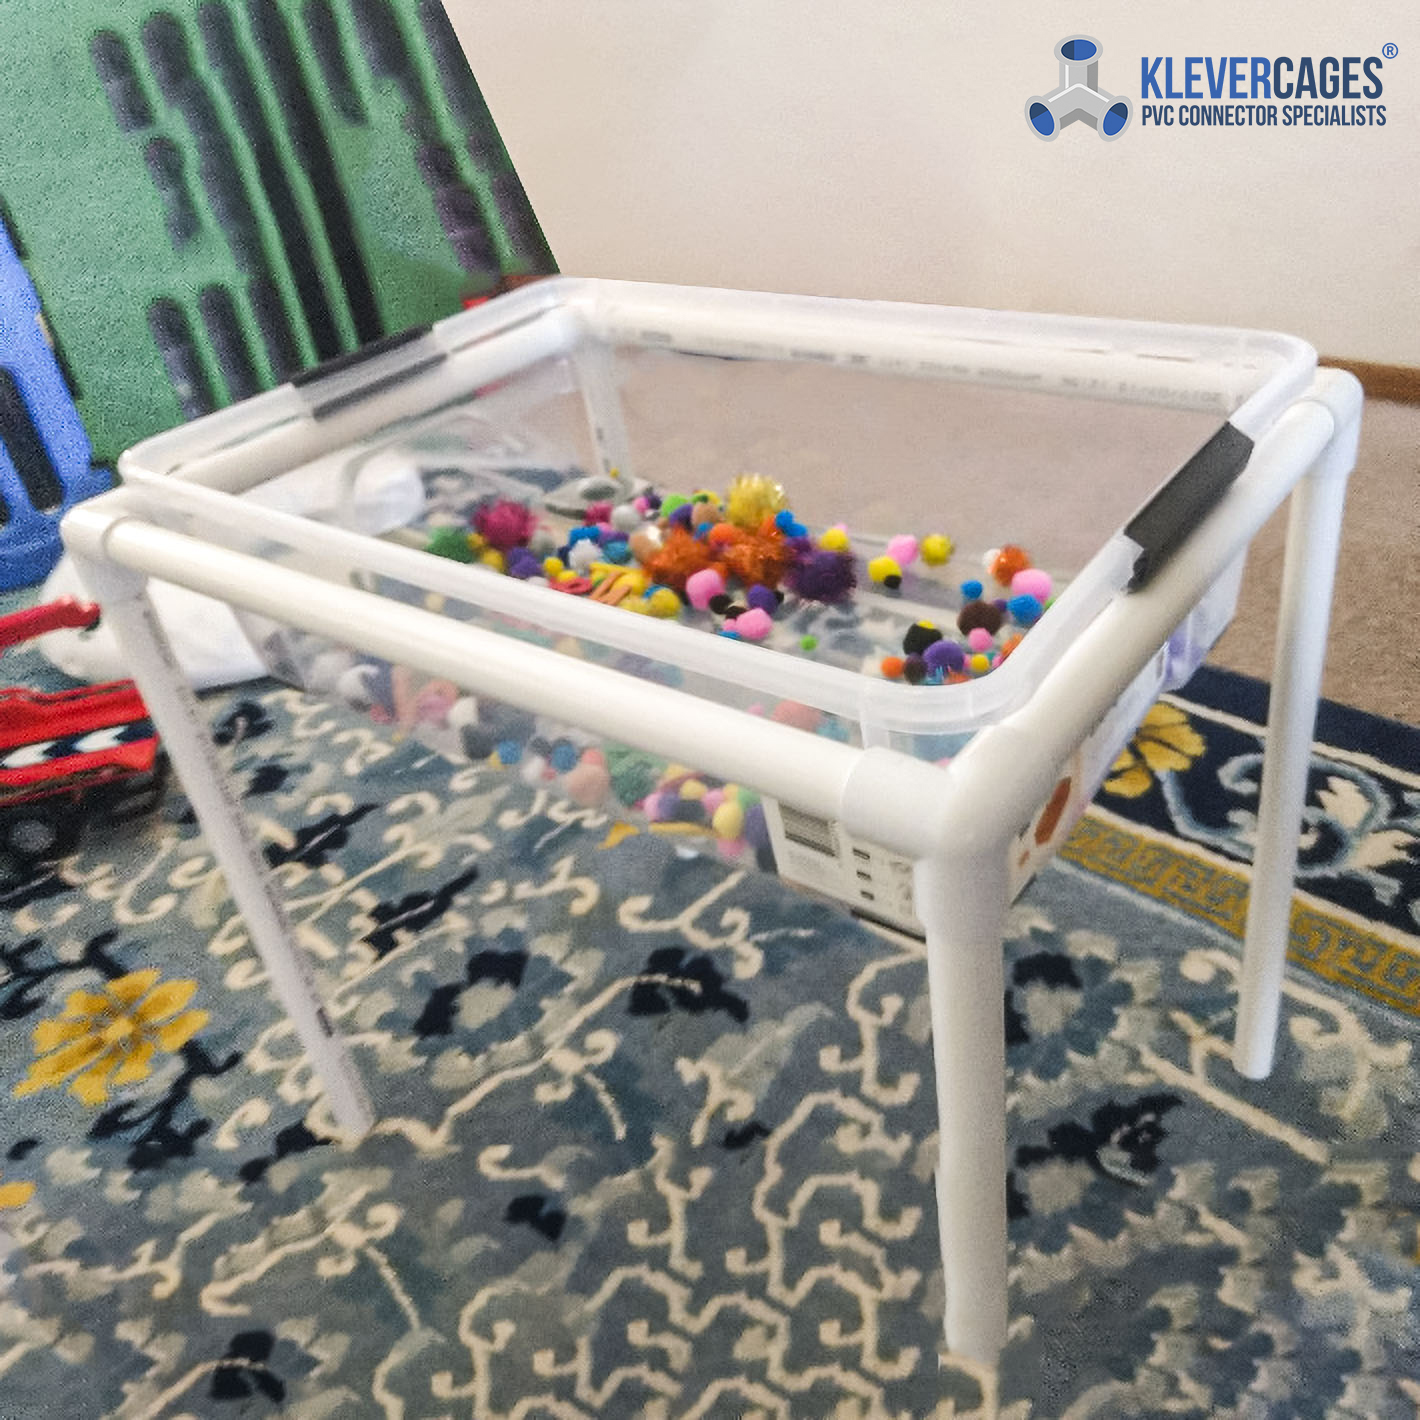 Childrens sensory play table built with 3 way fitting connectors and PVC pipe from Klever Cages